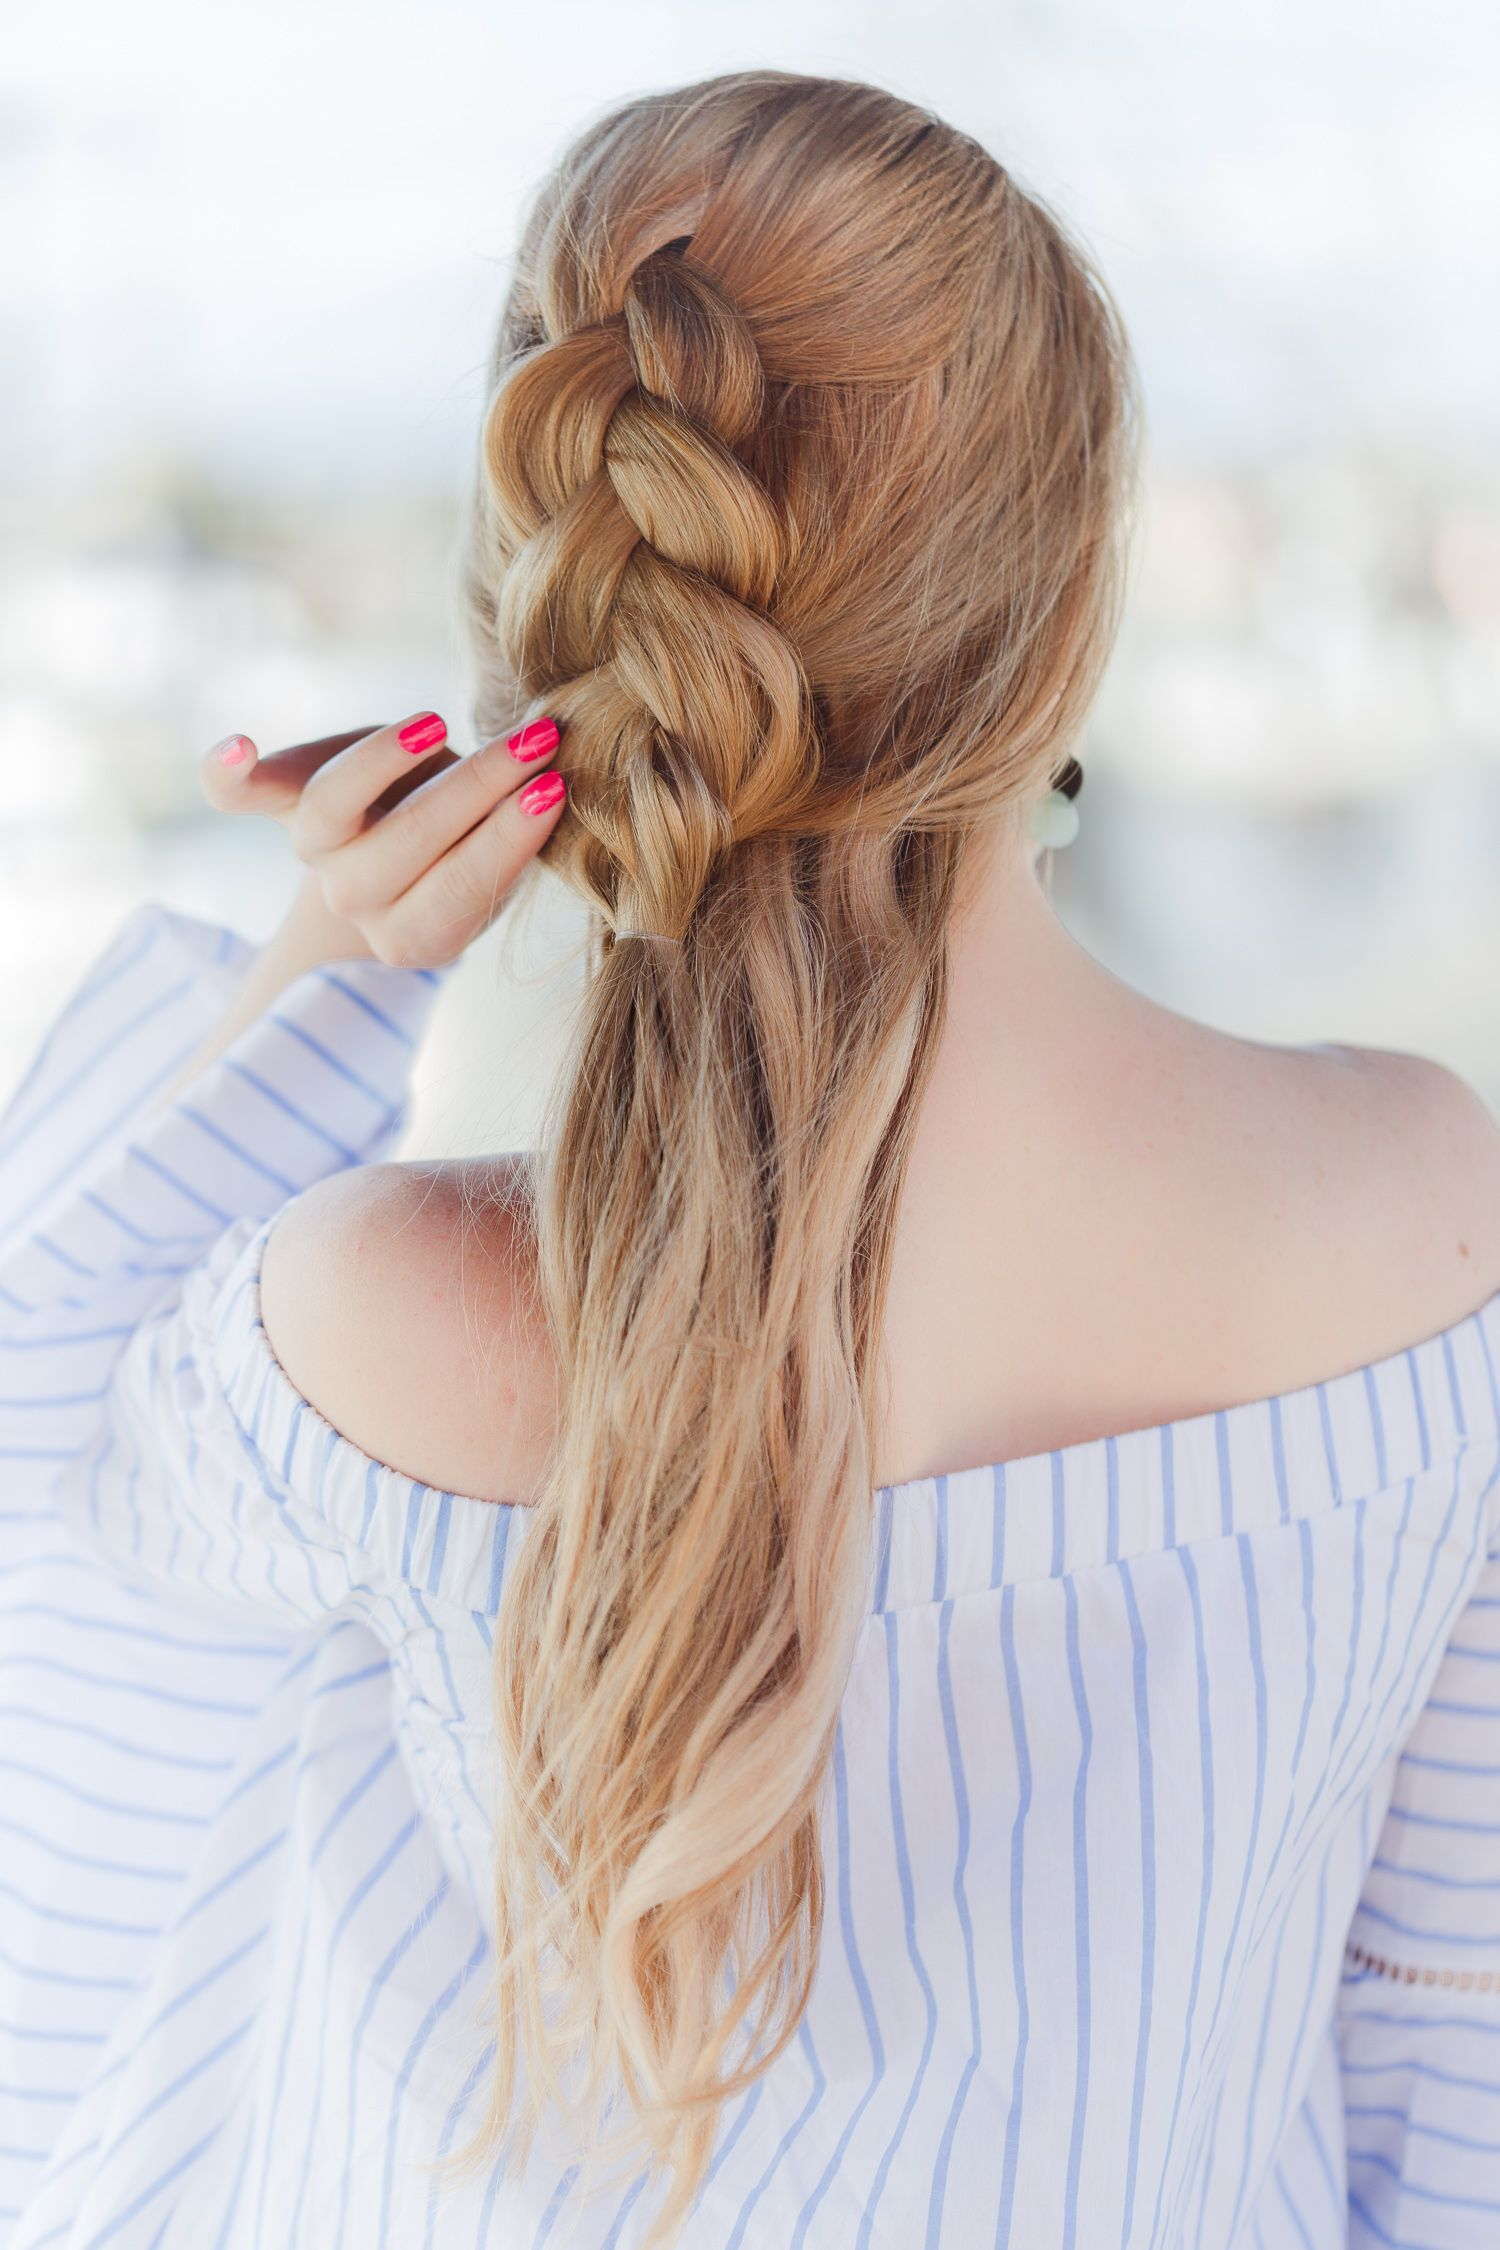 Beach Hairstyles Unique Half Up Dutch Braid Hairstyle And Beach Walk  Design Every Day